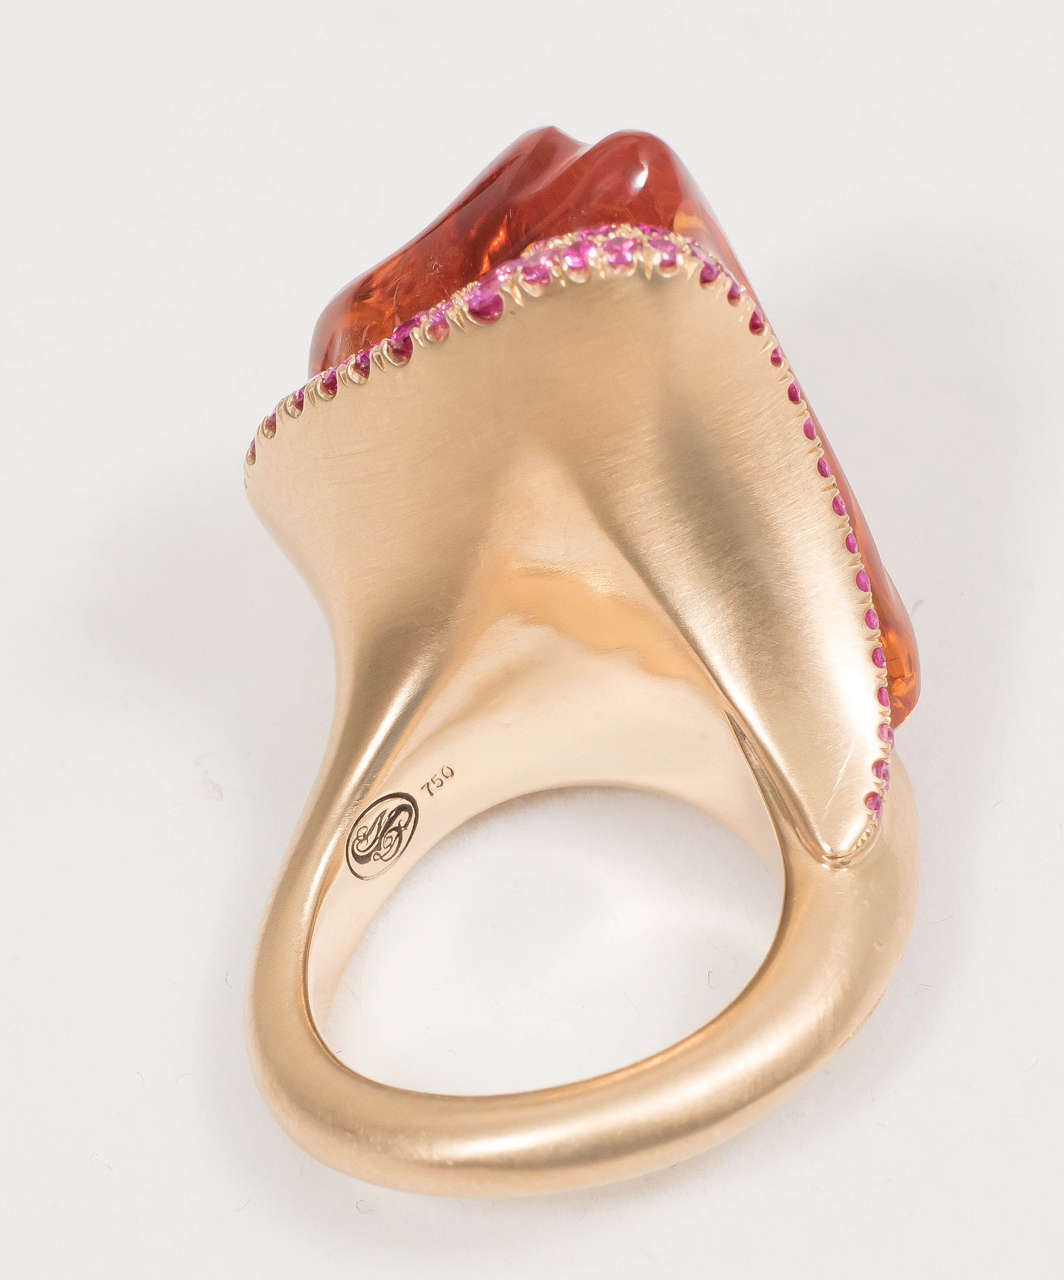 Women's or Men's Naomi Sarna Hand-Carved Citrine Pink Sapphire Gold Ring For Sale